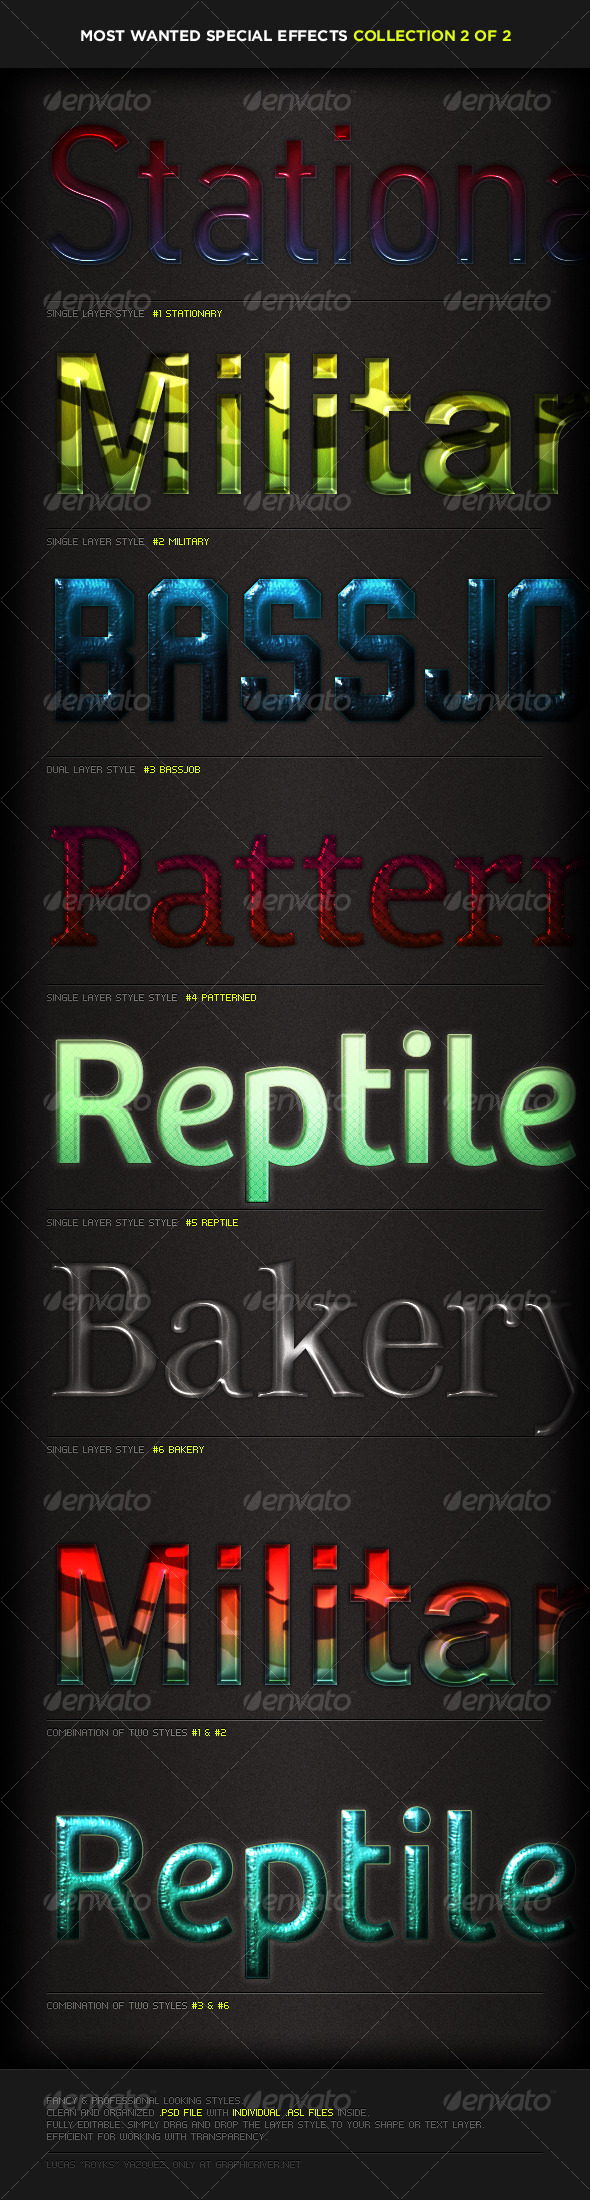 Most-Wanted Styles Pack 2 - Text Effects Styles